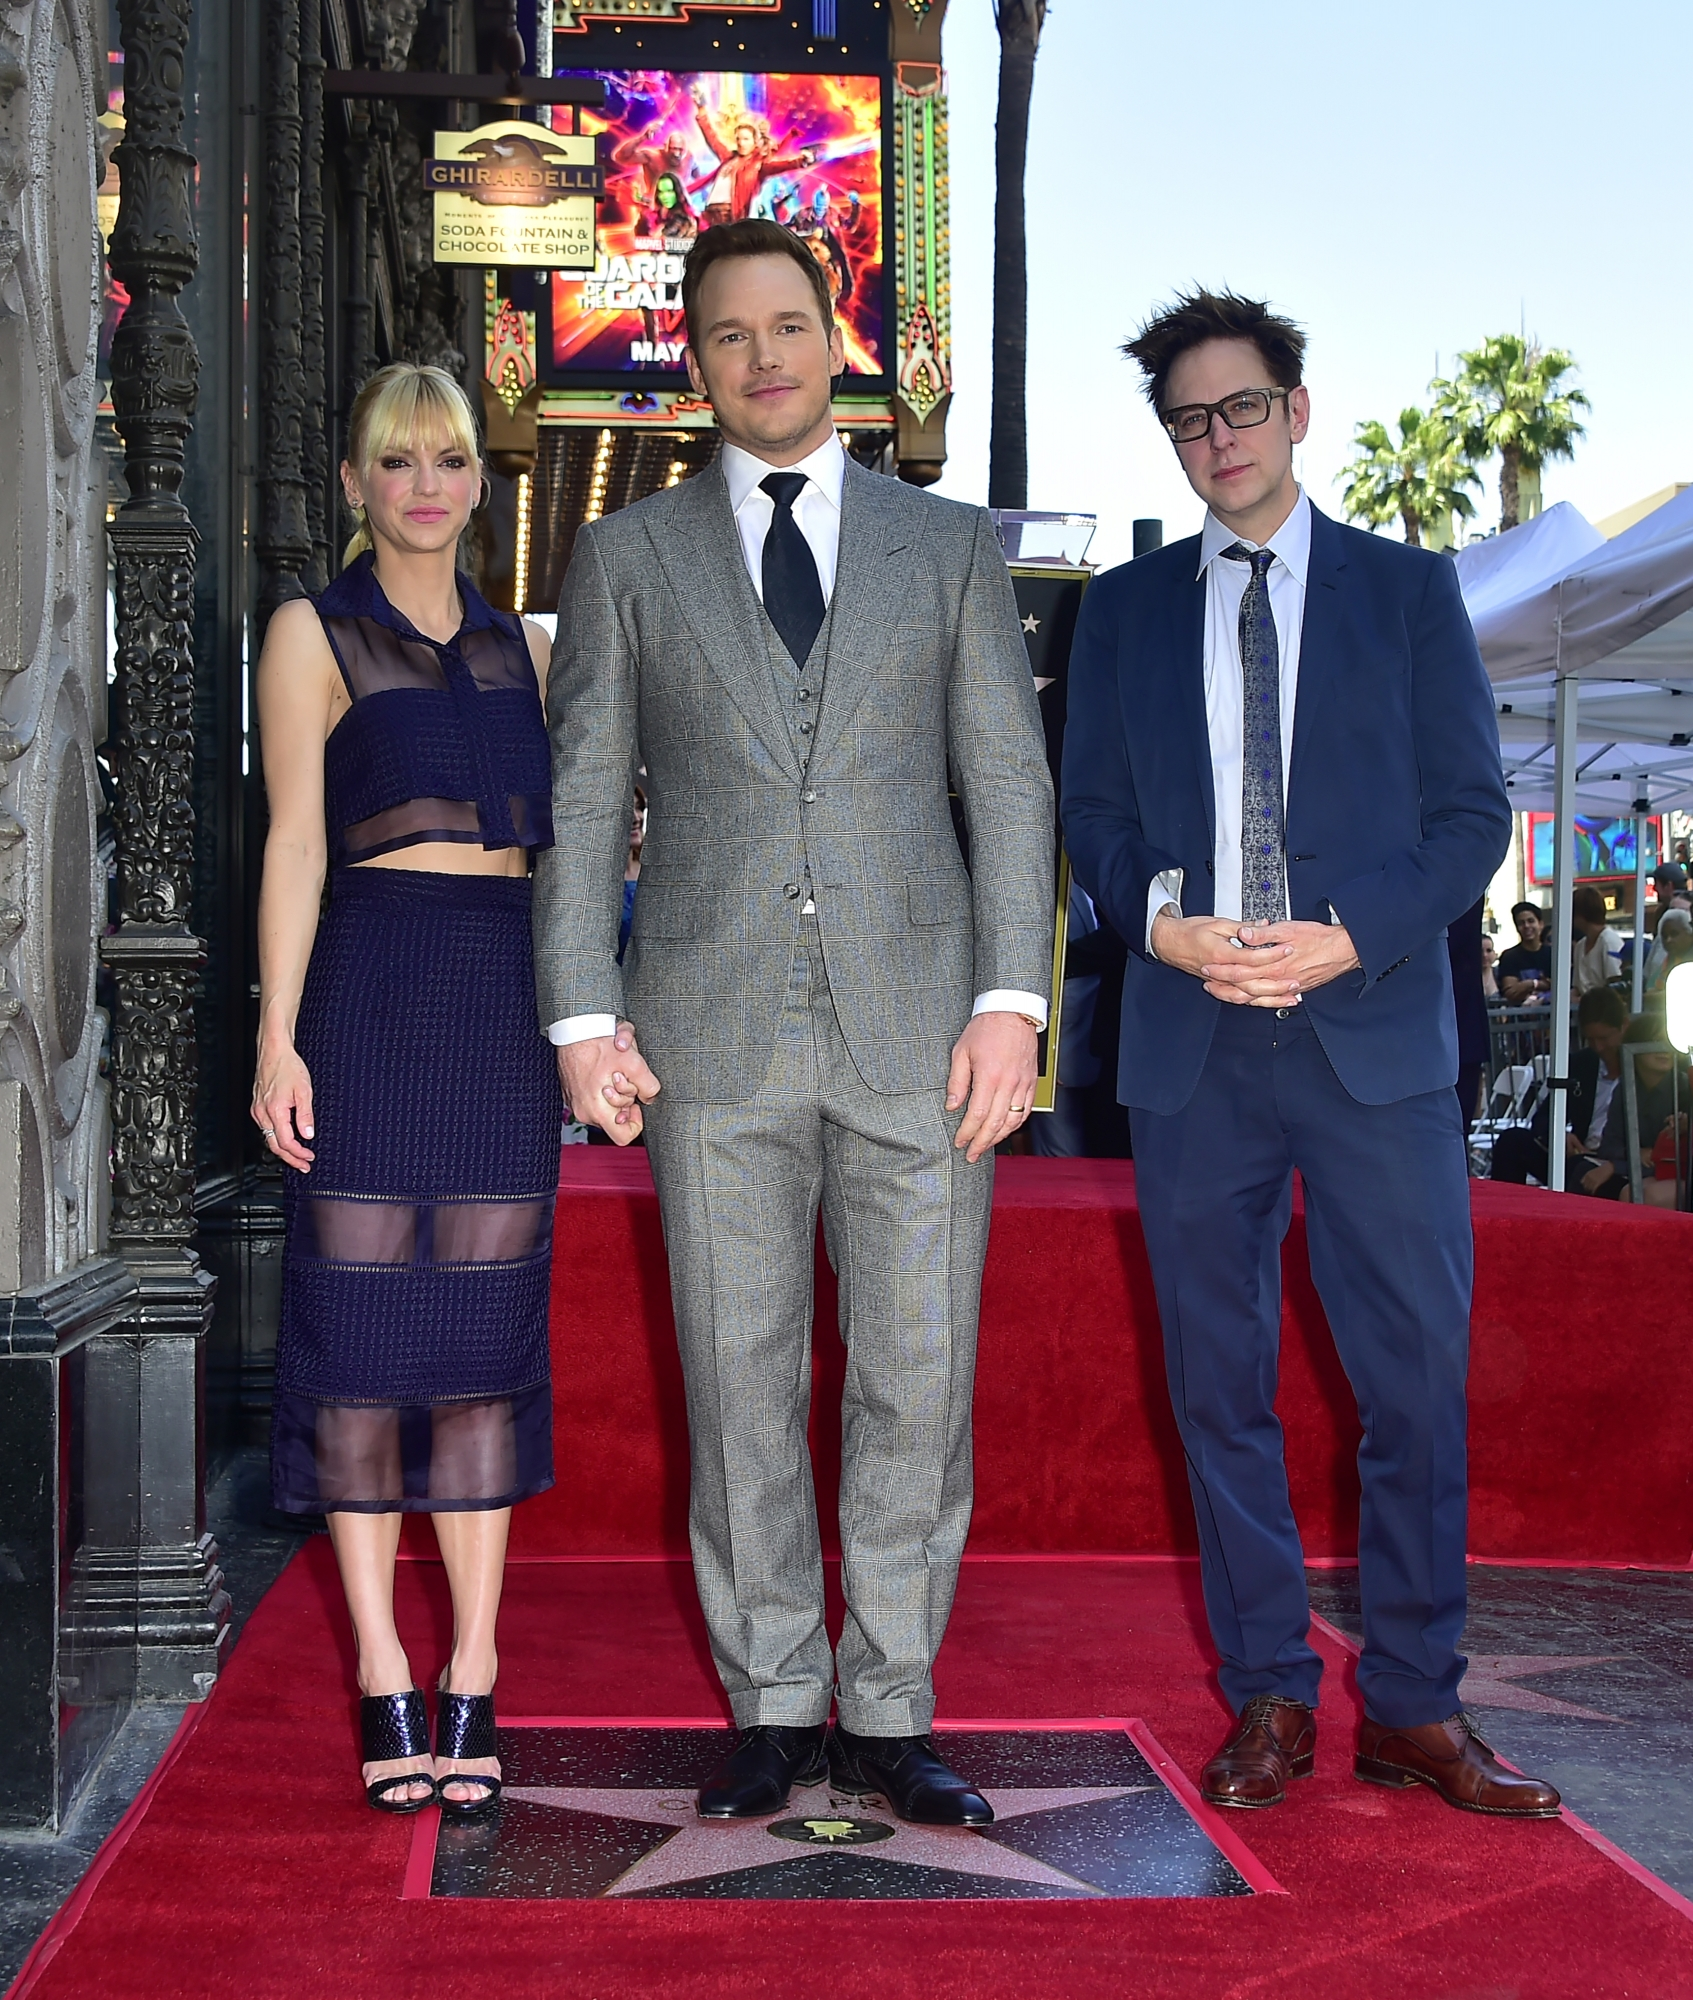 James Gunn junto a Chris Pratt y Anna Faris en Hollywood. (Foto: AFP)